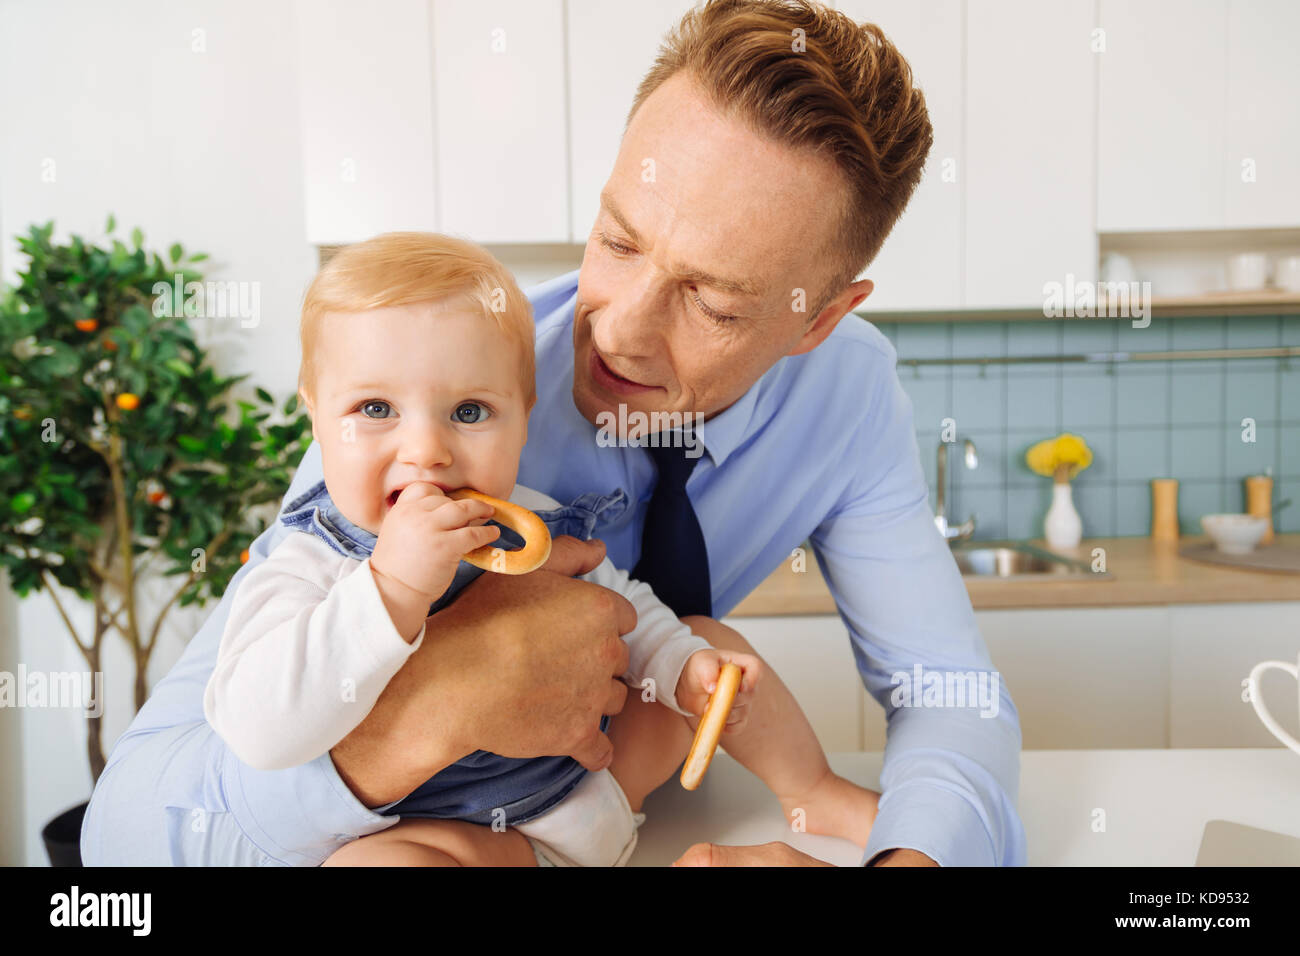 Cute baby child holding a bagel - Stock Image